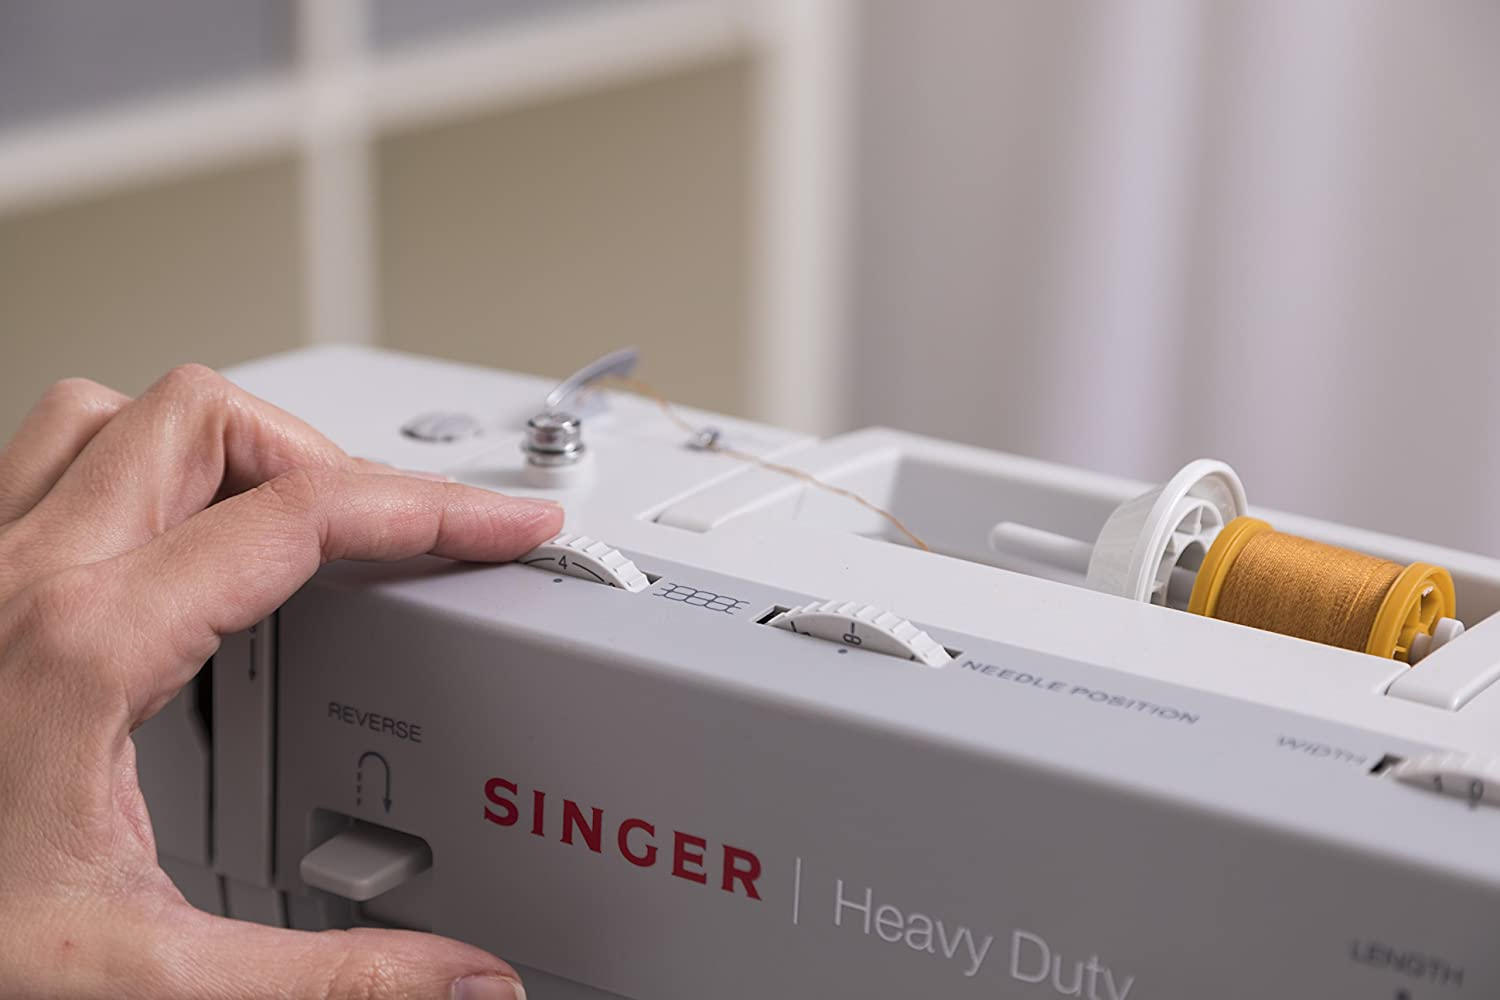 SINGER 4411 Sewing Machine side option